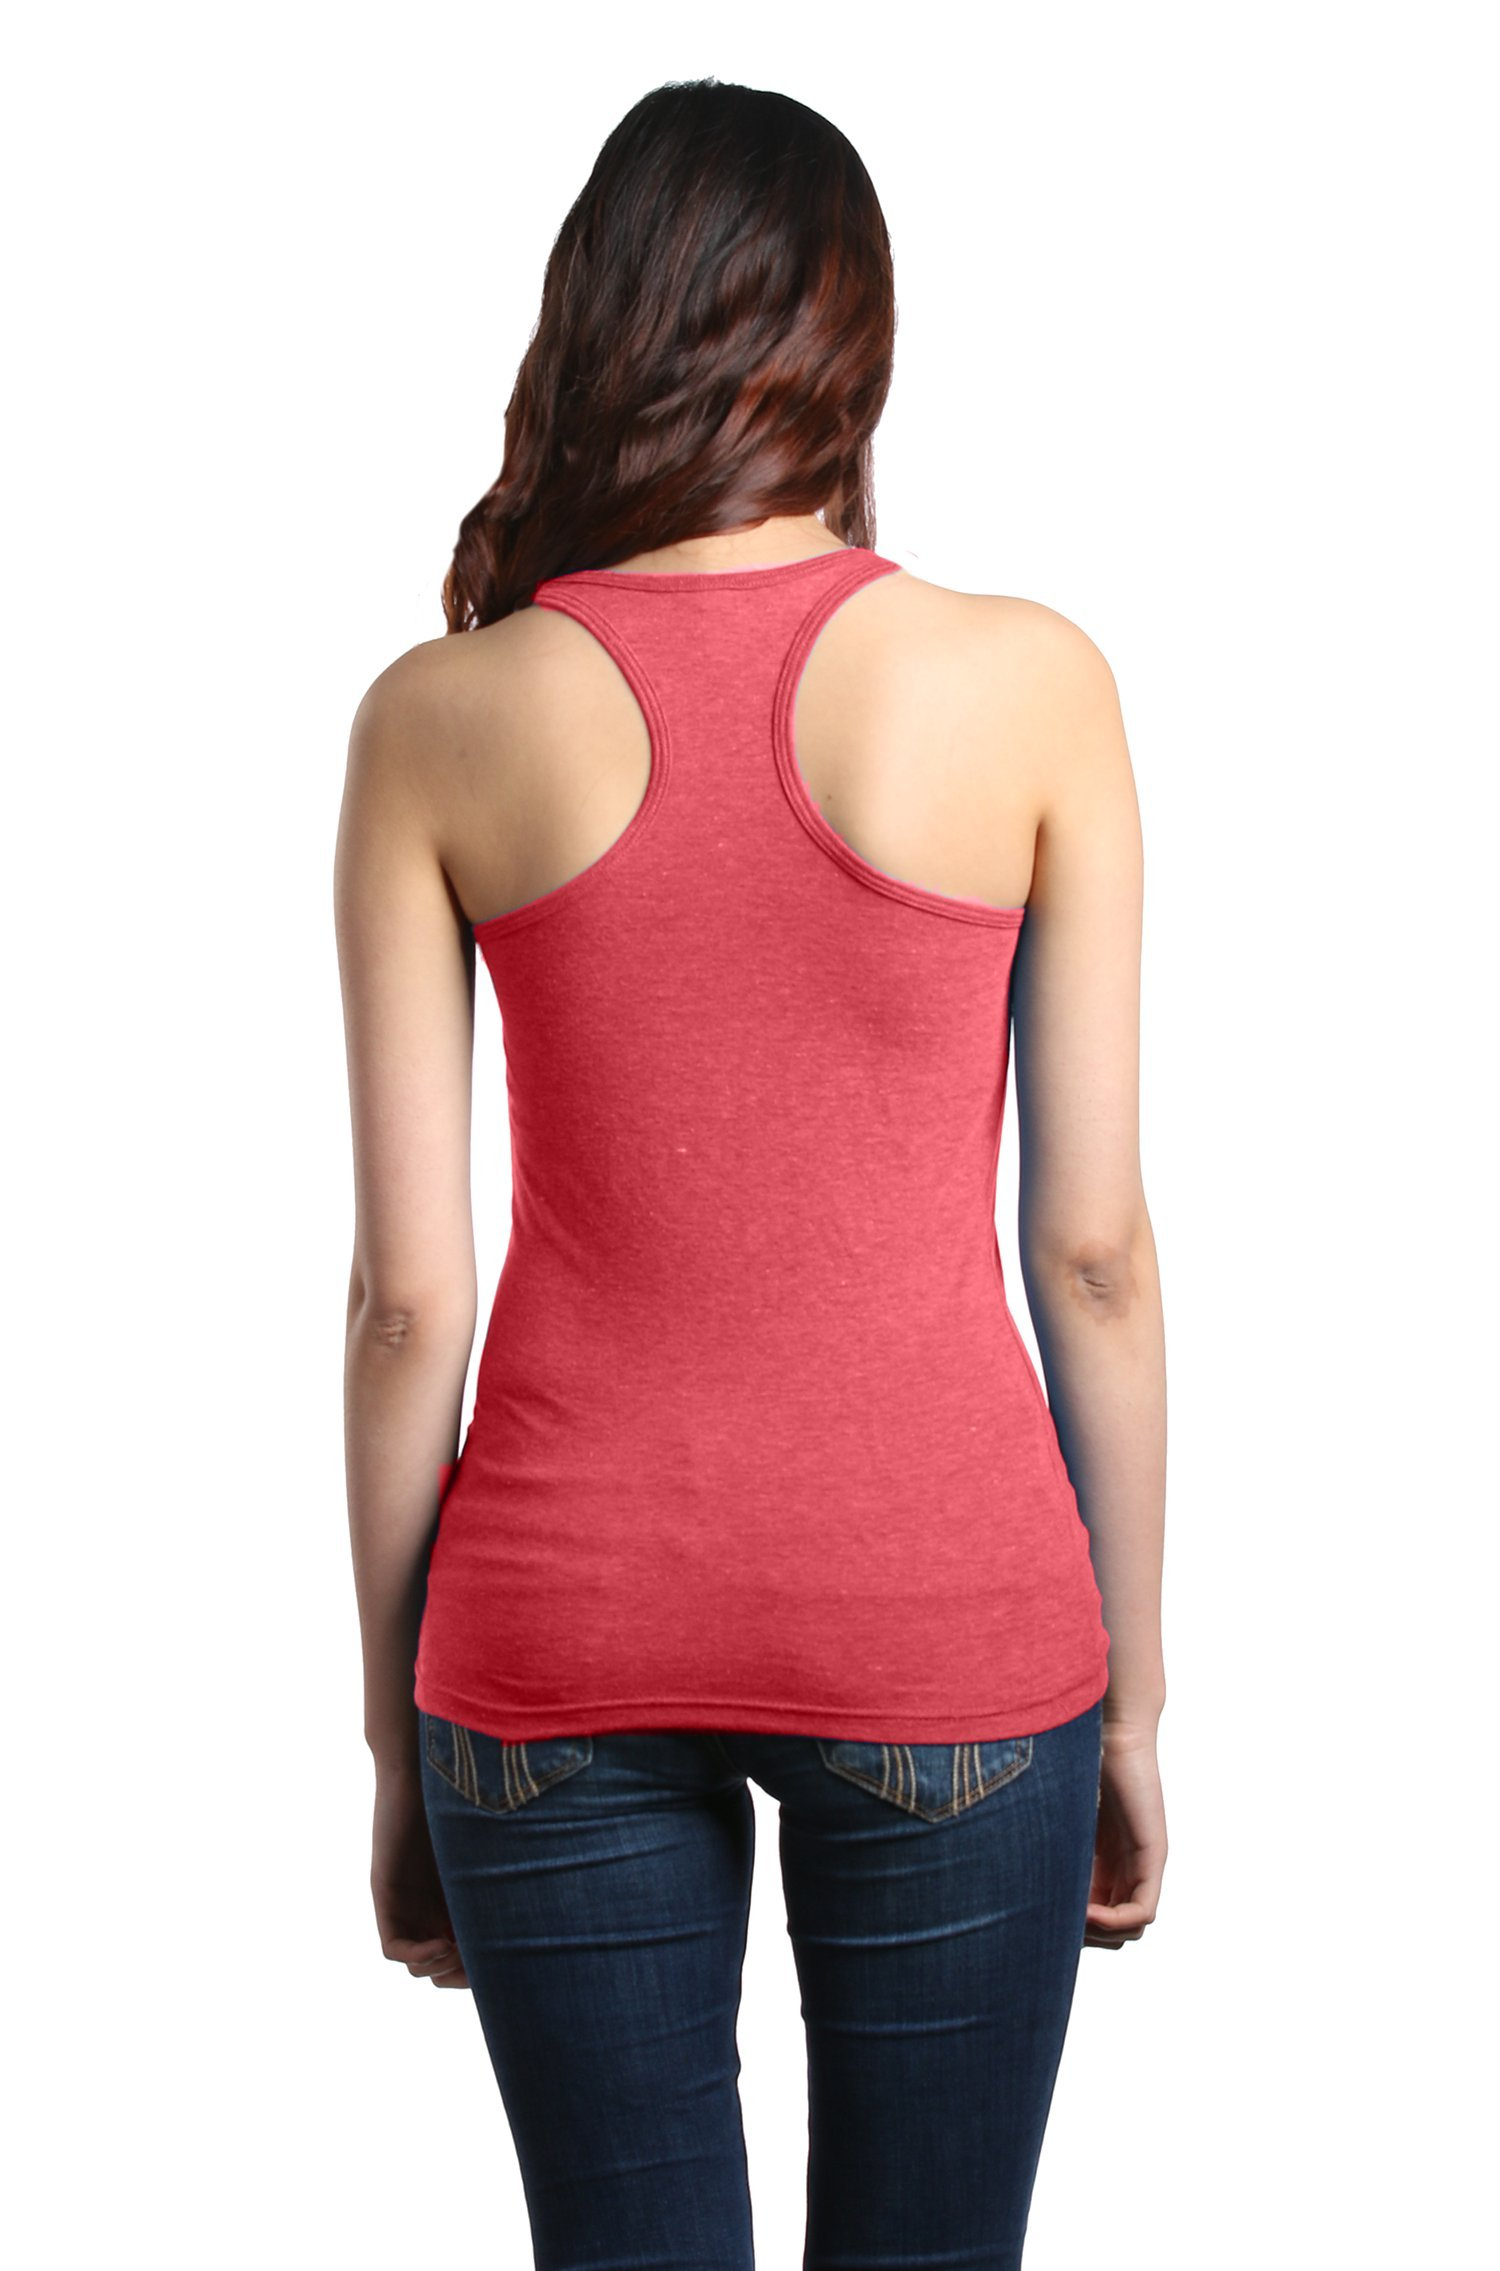 Shop4Ever Drinking Wine & Feeling Fine Women's Racerback Tank Top Wino Tank Tops Medium Red 0 by Shop4Ever (Image #3)